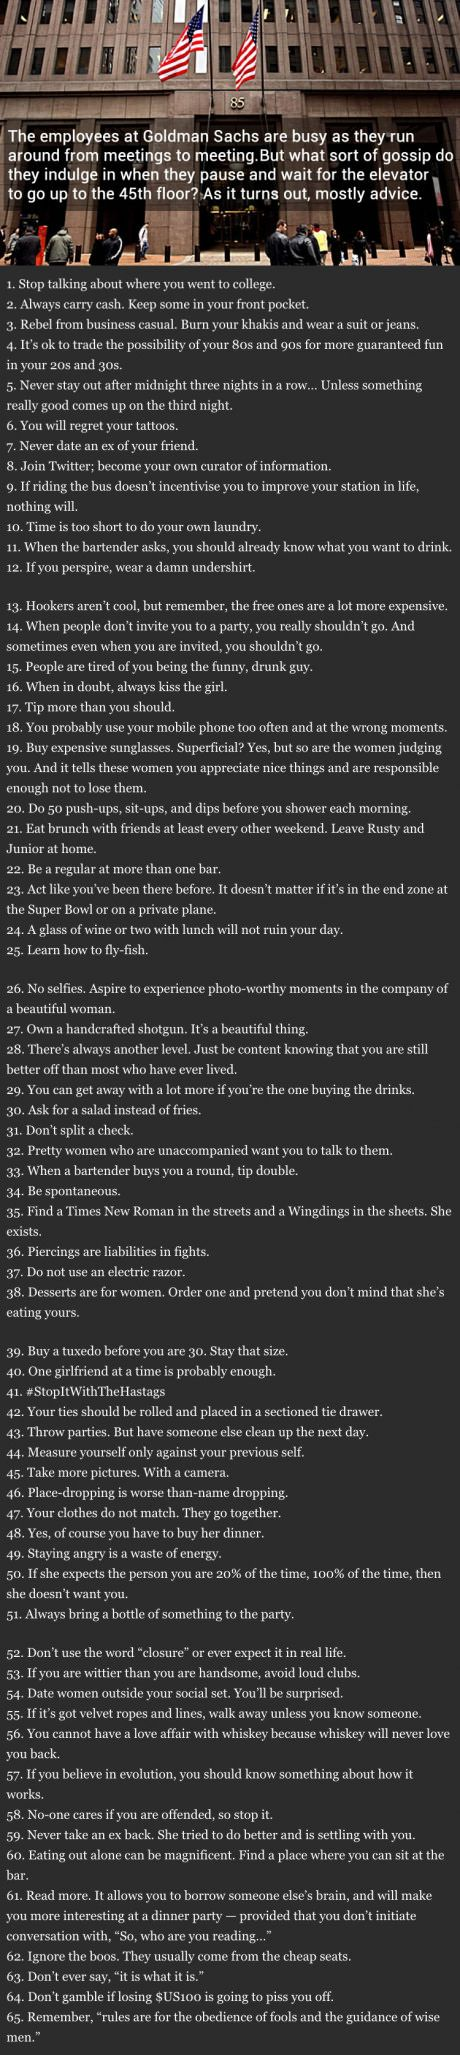 65 Rules For Being A Man According To Elevator Gossip At The Goldman Sachs. Wall Street Building